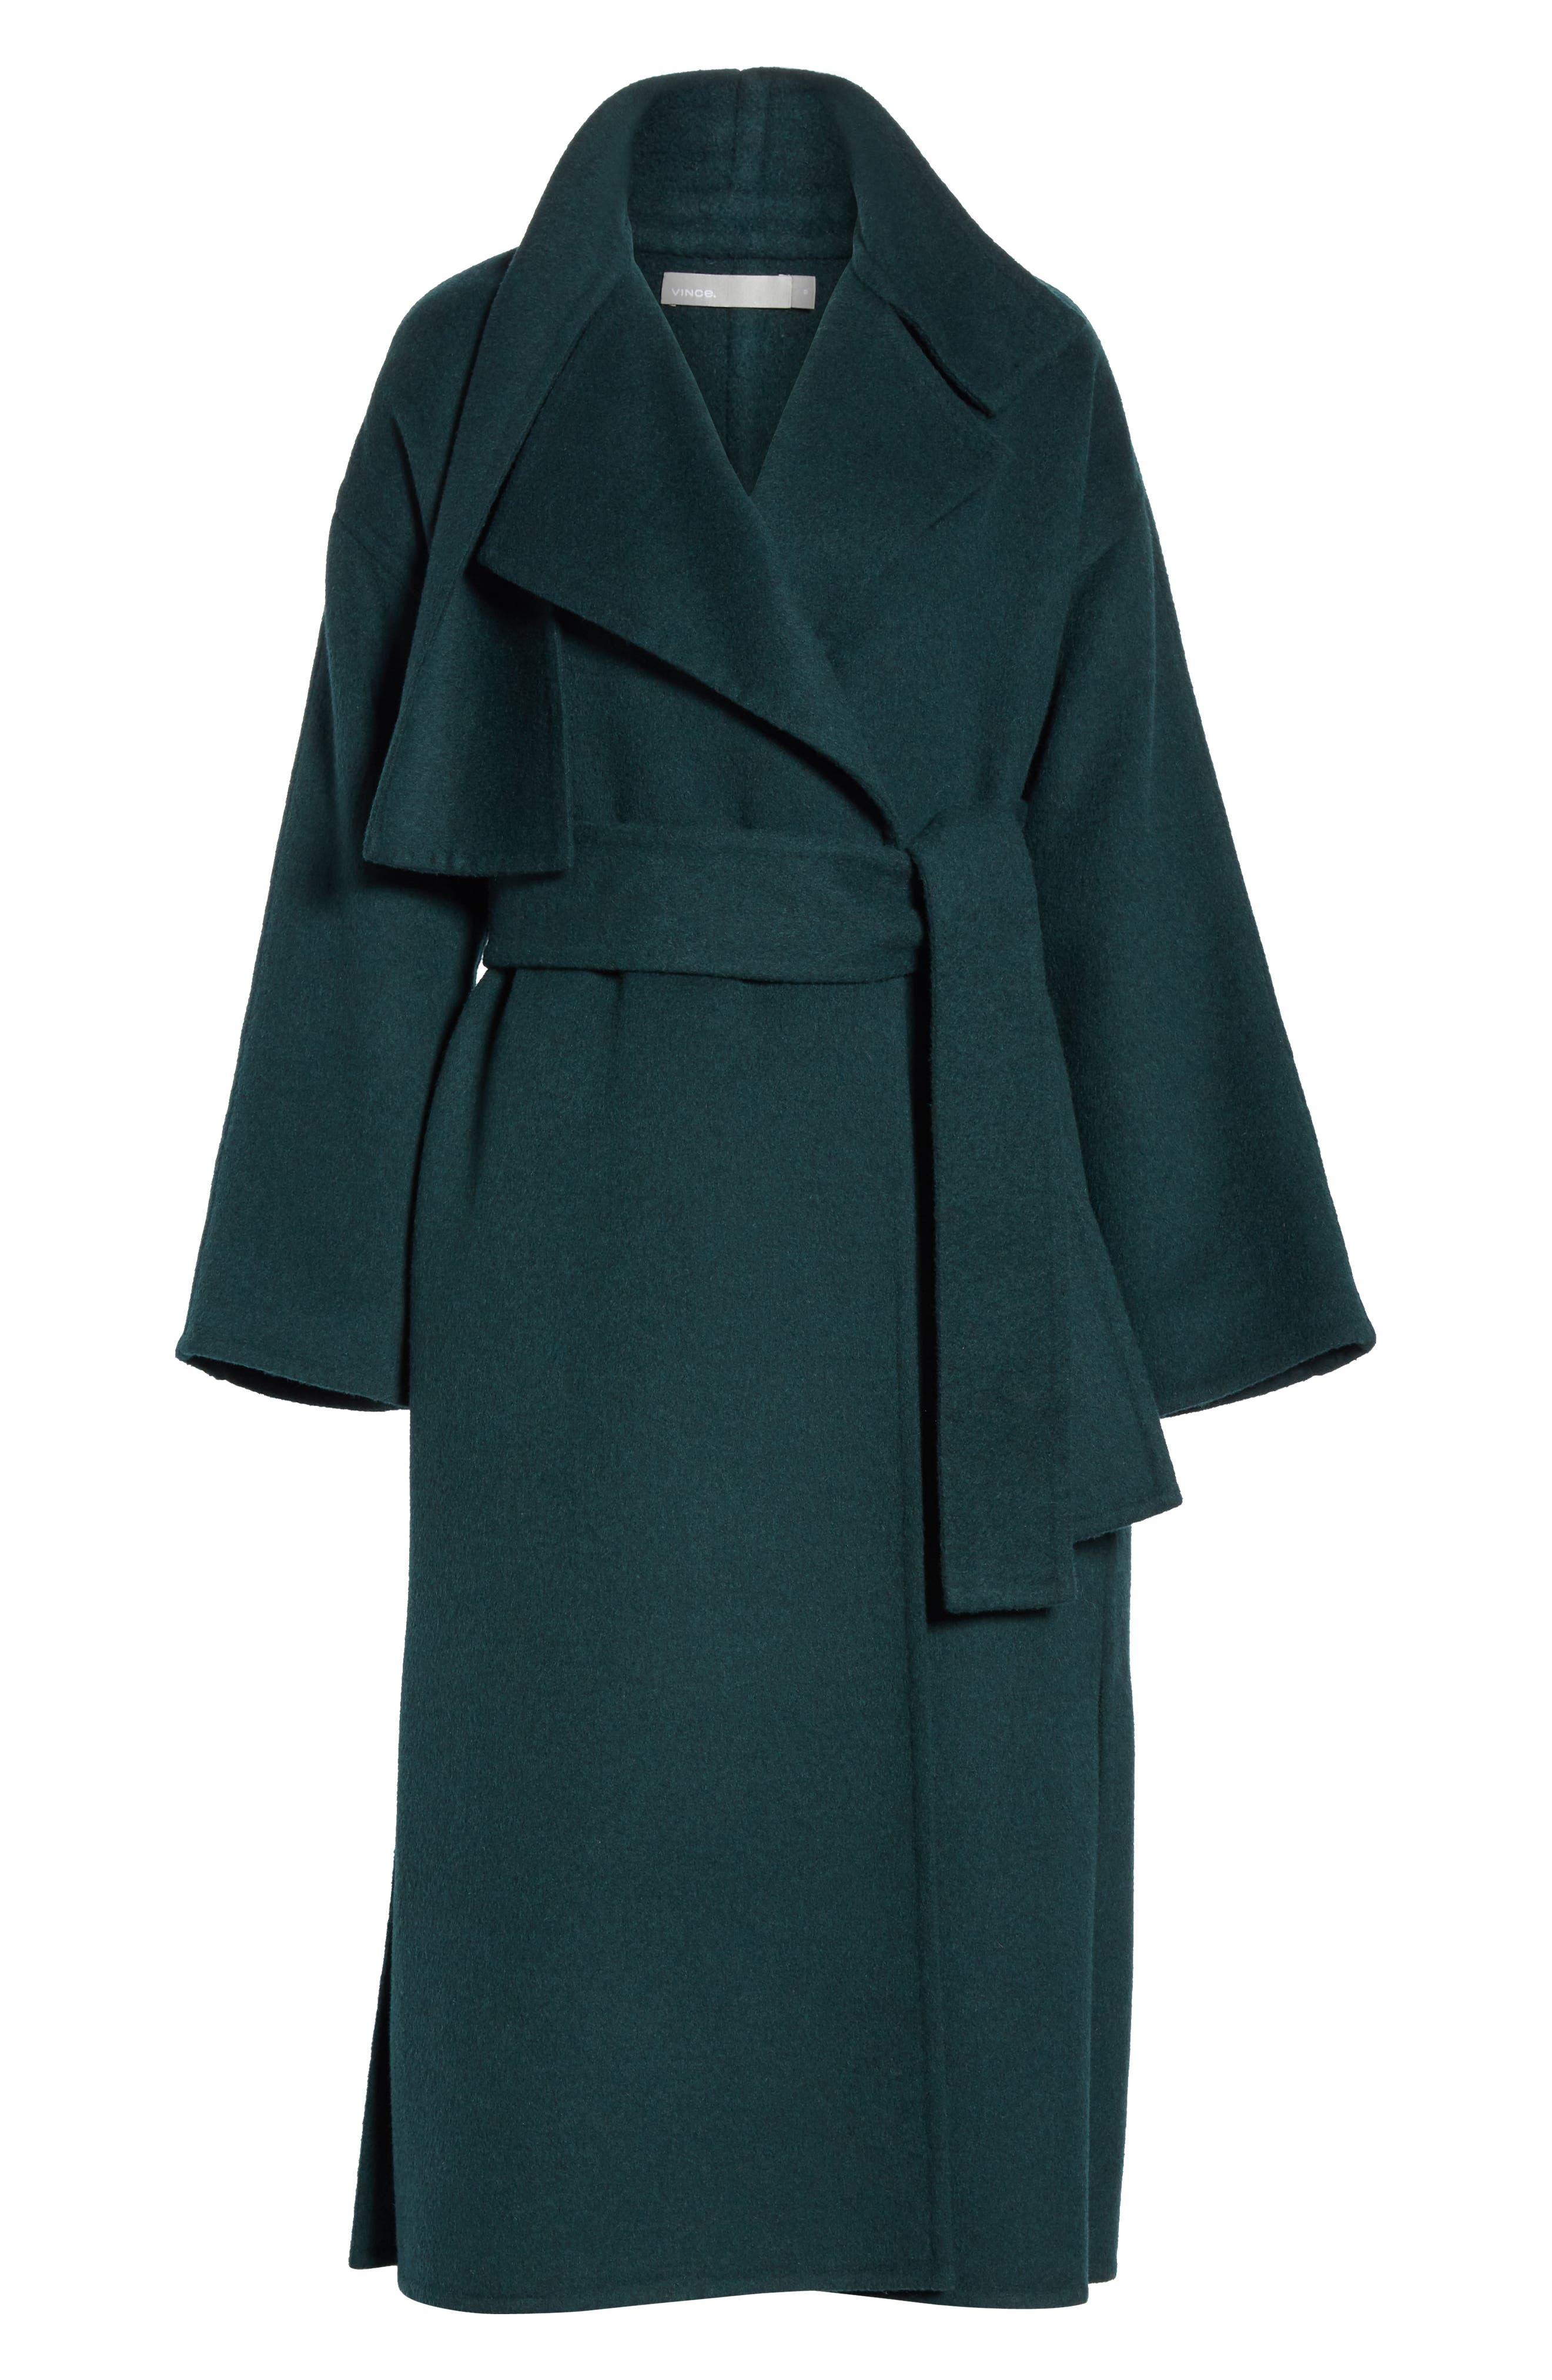 VINCE, Belted Wool Blend Cozy Coat, Alternate thumbnail 6, color, DARK PALM